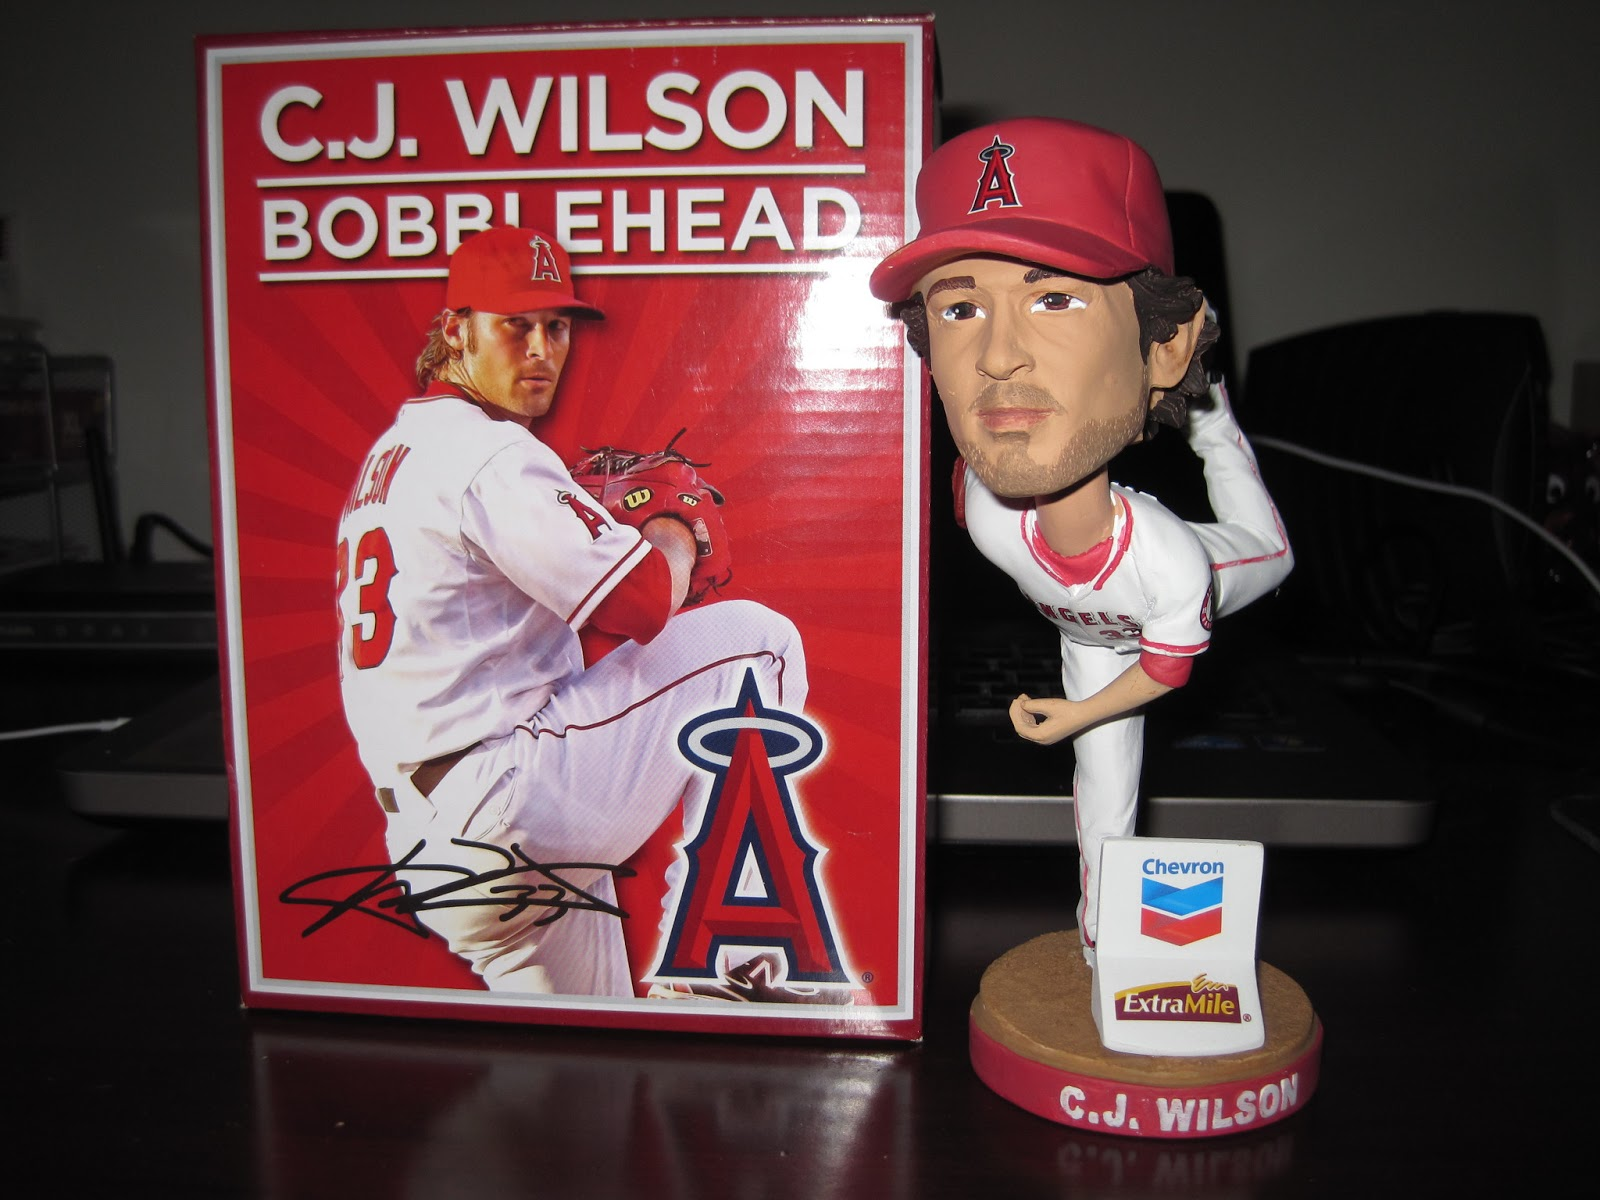 Angels Legends So Popular They've Earned Their Own Bobbleheads